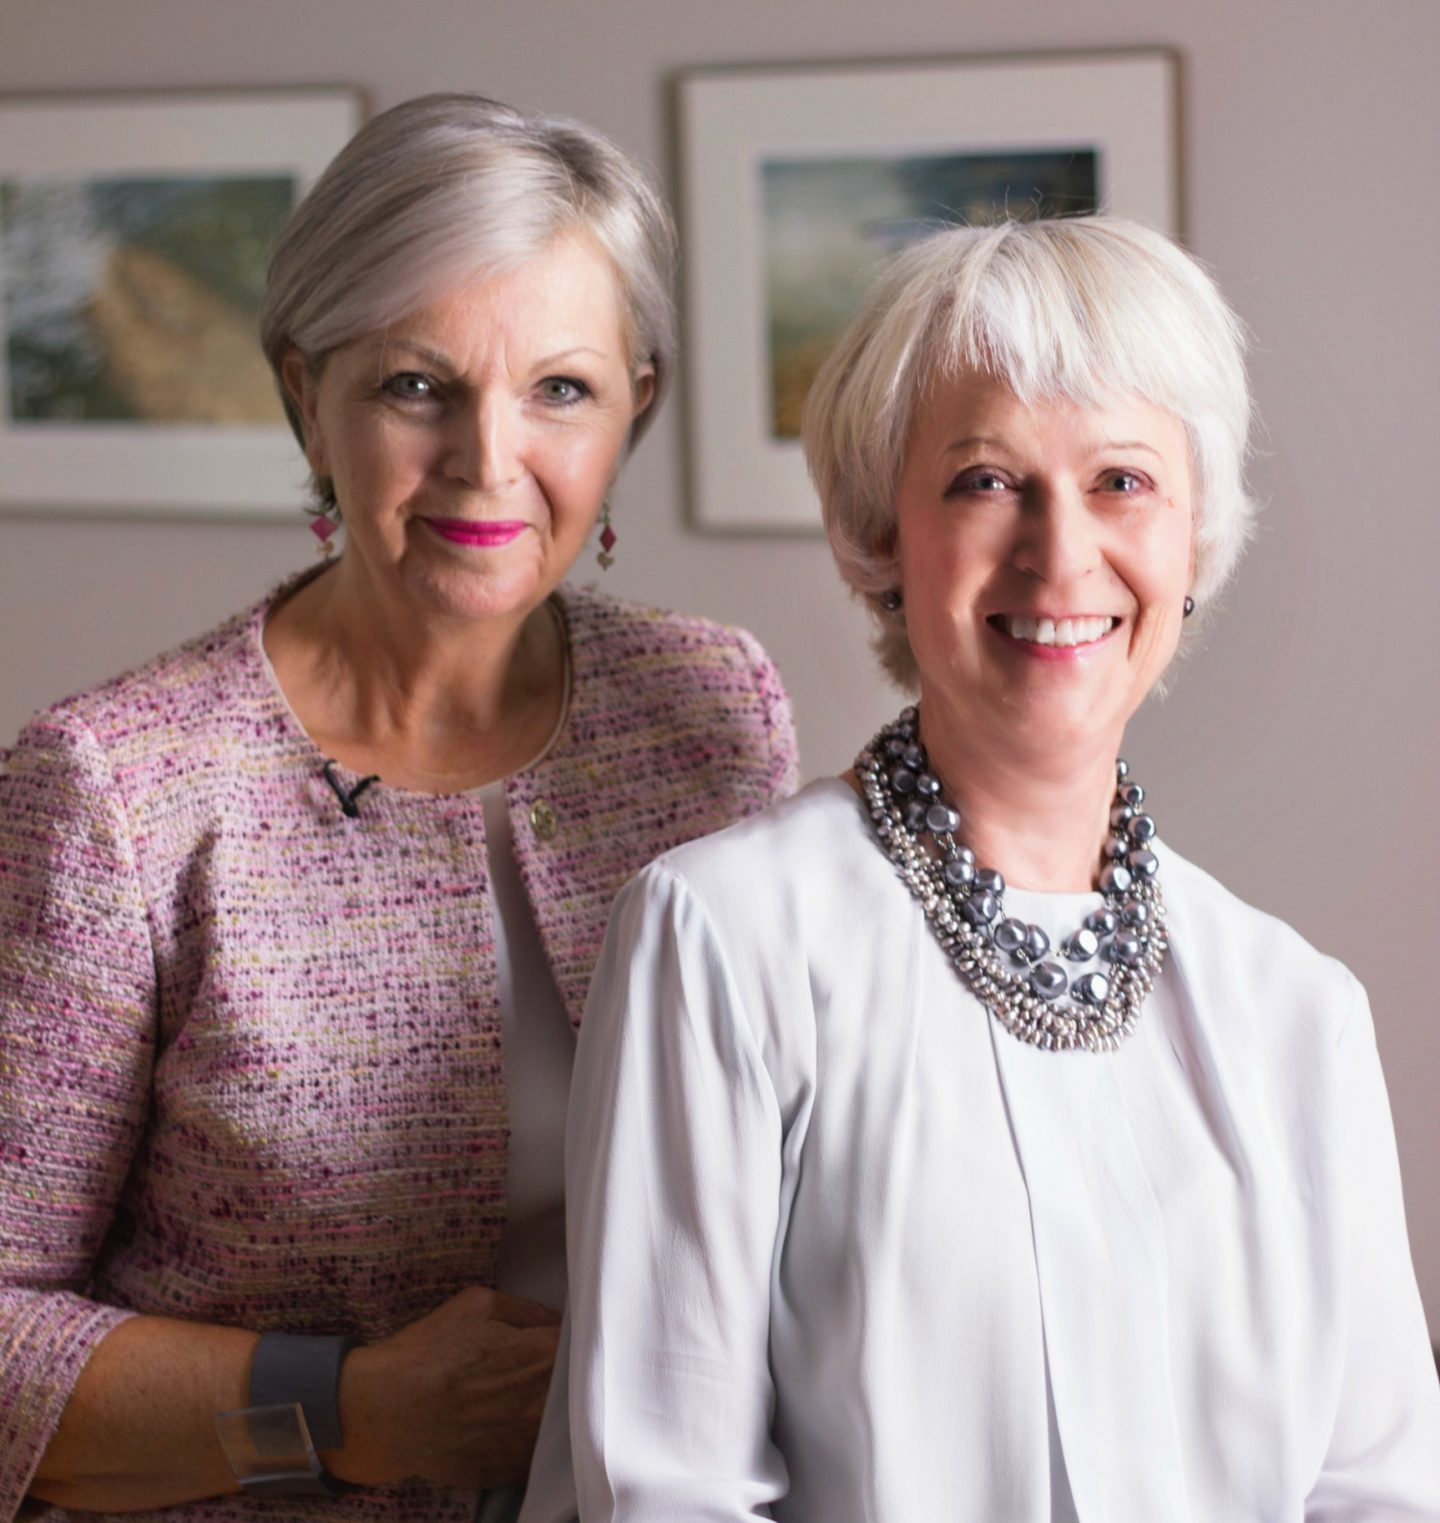 Fashion and makeup for older women